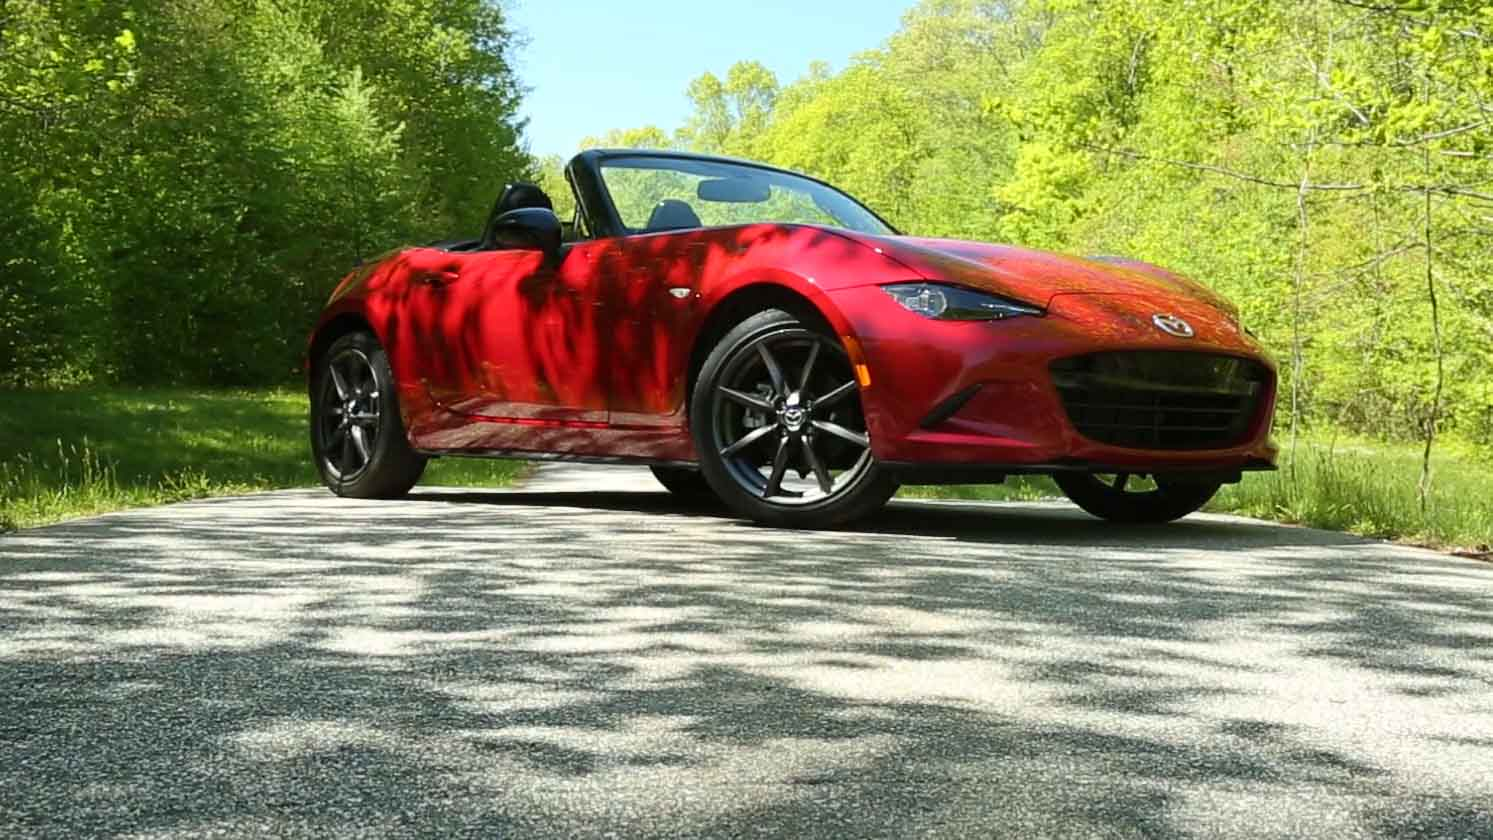 Mazda MX-5 Car Wallpaper For Android and iPhone | Mobile Wallpaper